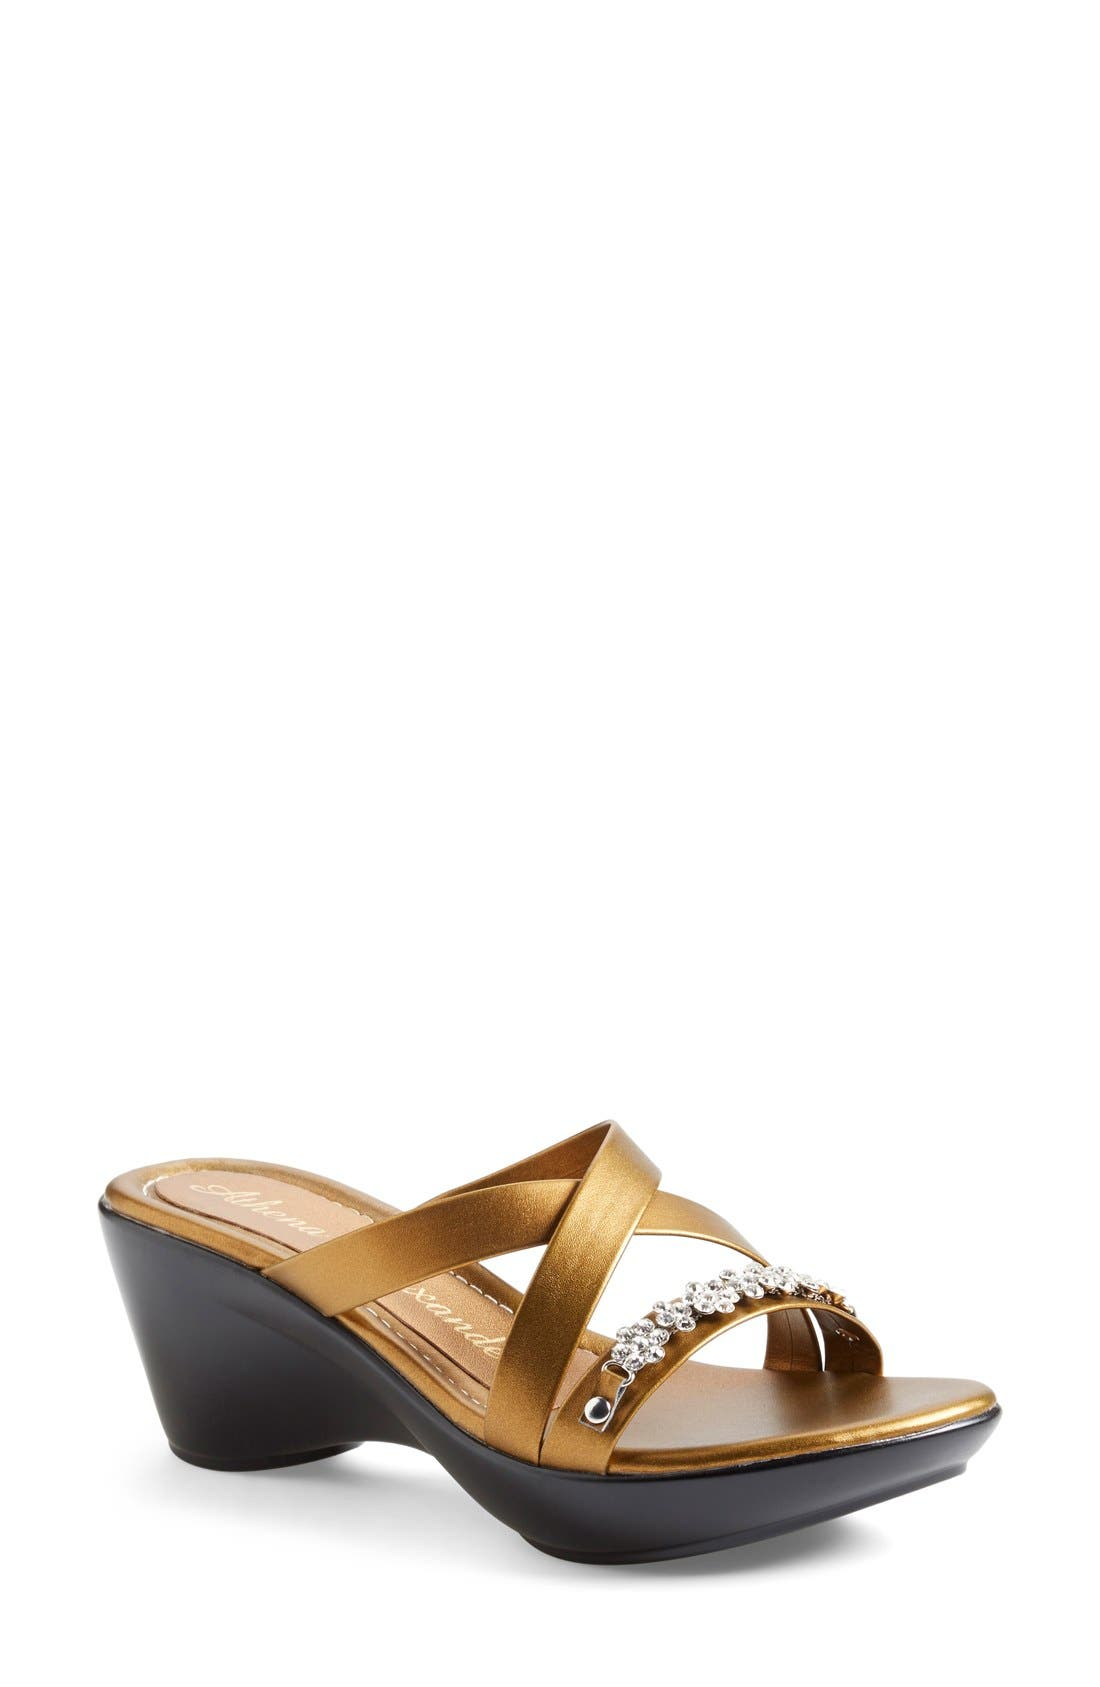 Alternate Image 1 Selected - Athena Alexander 'Tangie' Crystal Embellished Wedge Sandal (Women)